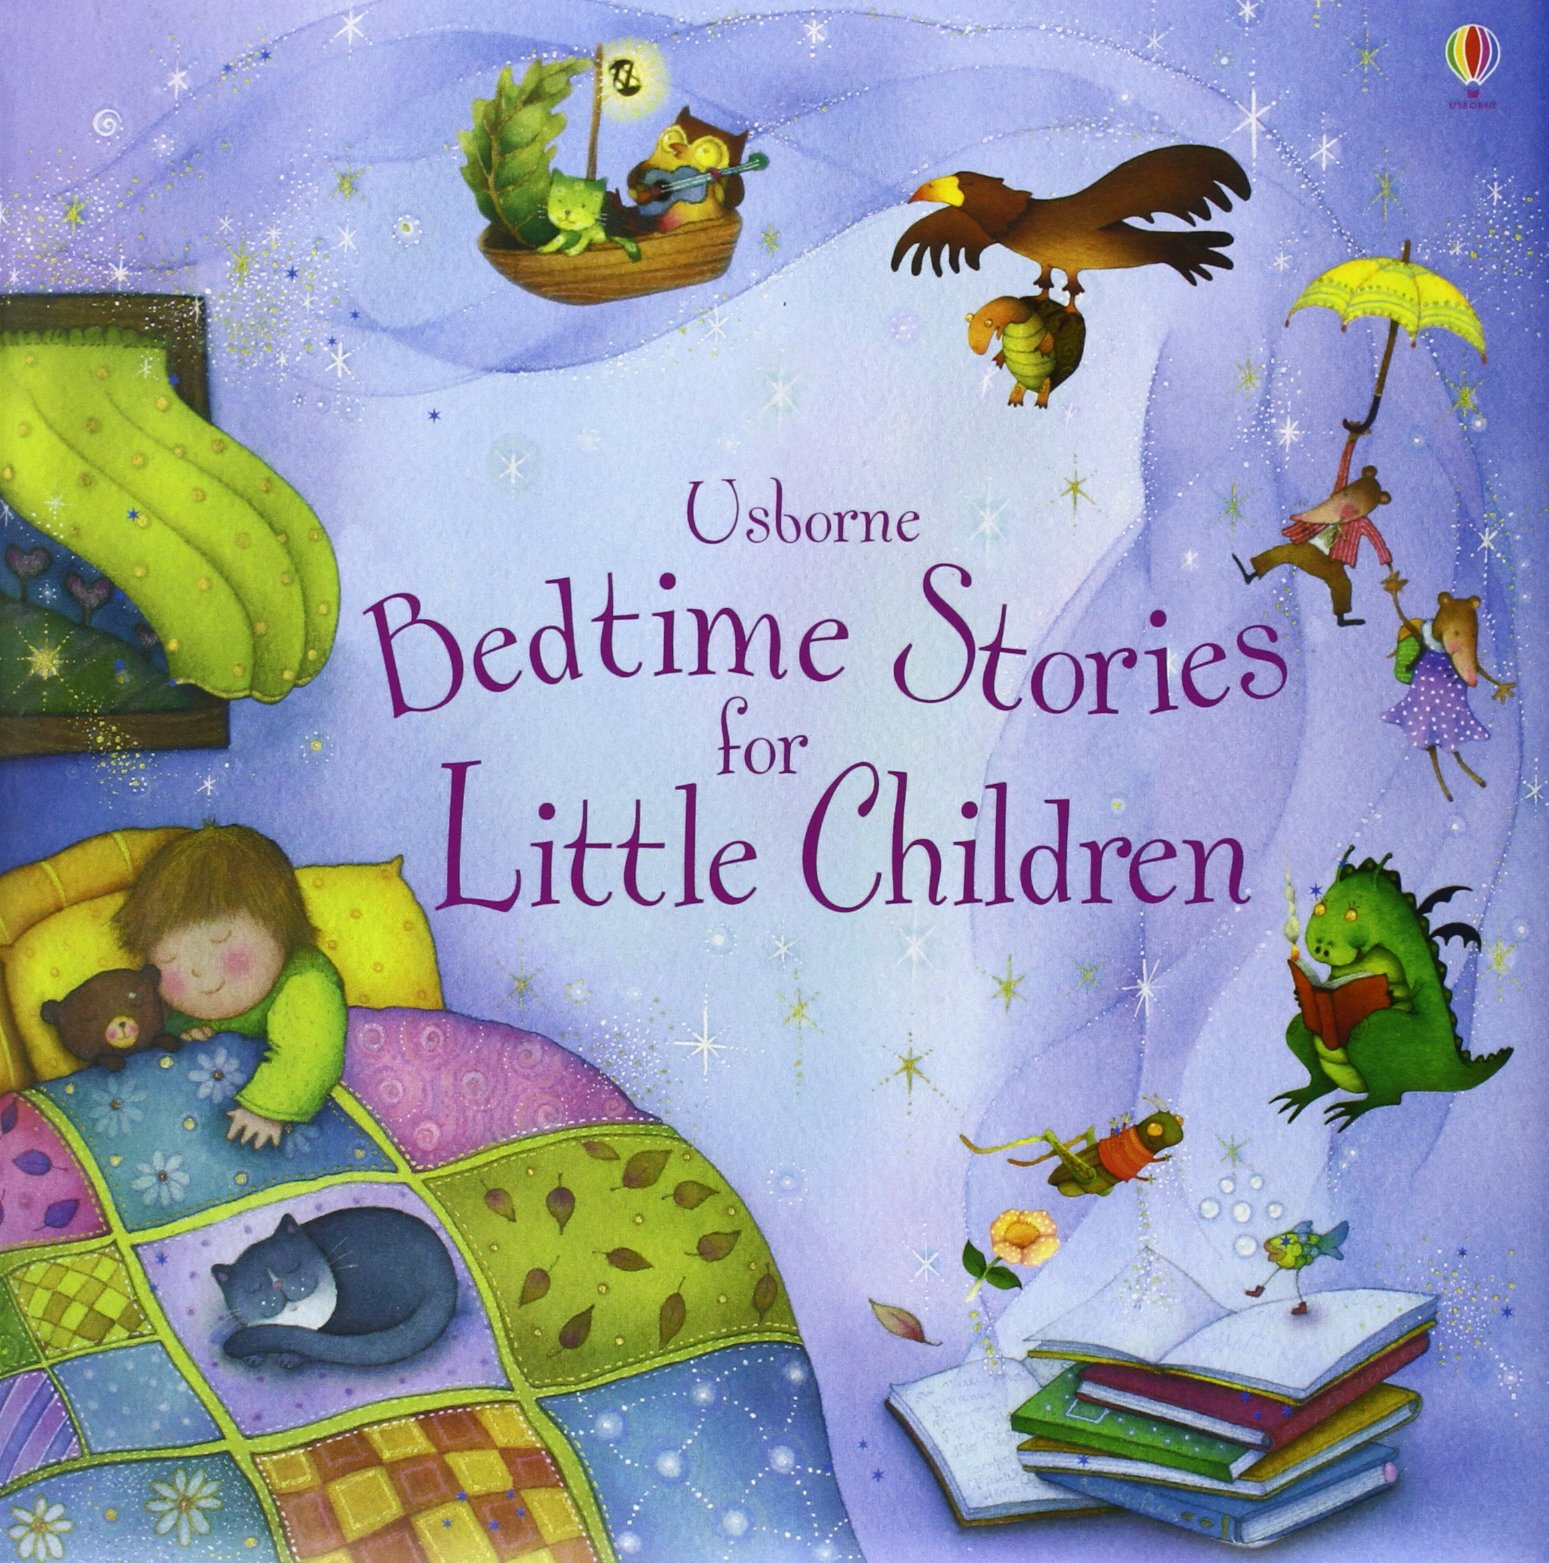 Uncategorized Bed Time Stories For Children bedtime stories for little children jenny tyler 9781409507024 amazon com books